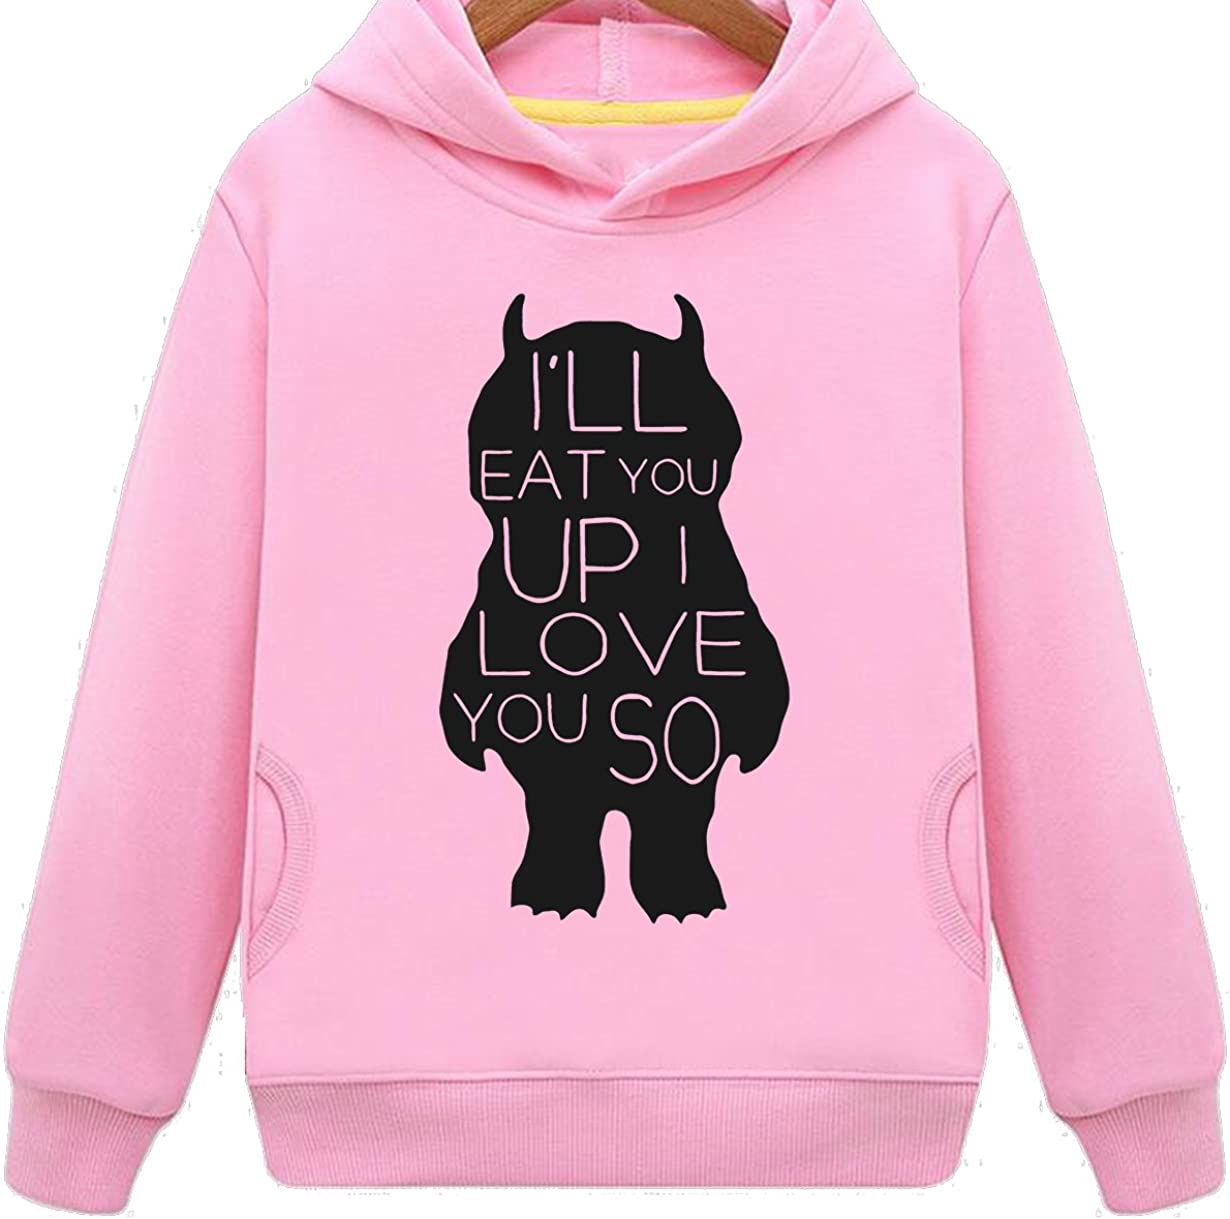 Kids Two Pockets Ill Eat You Up I Love you So Funny Hoodie